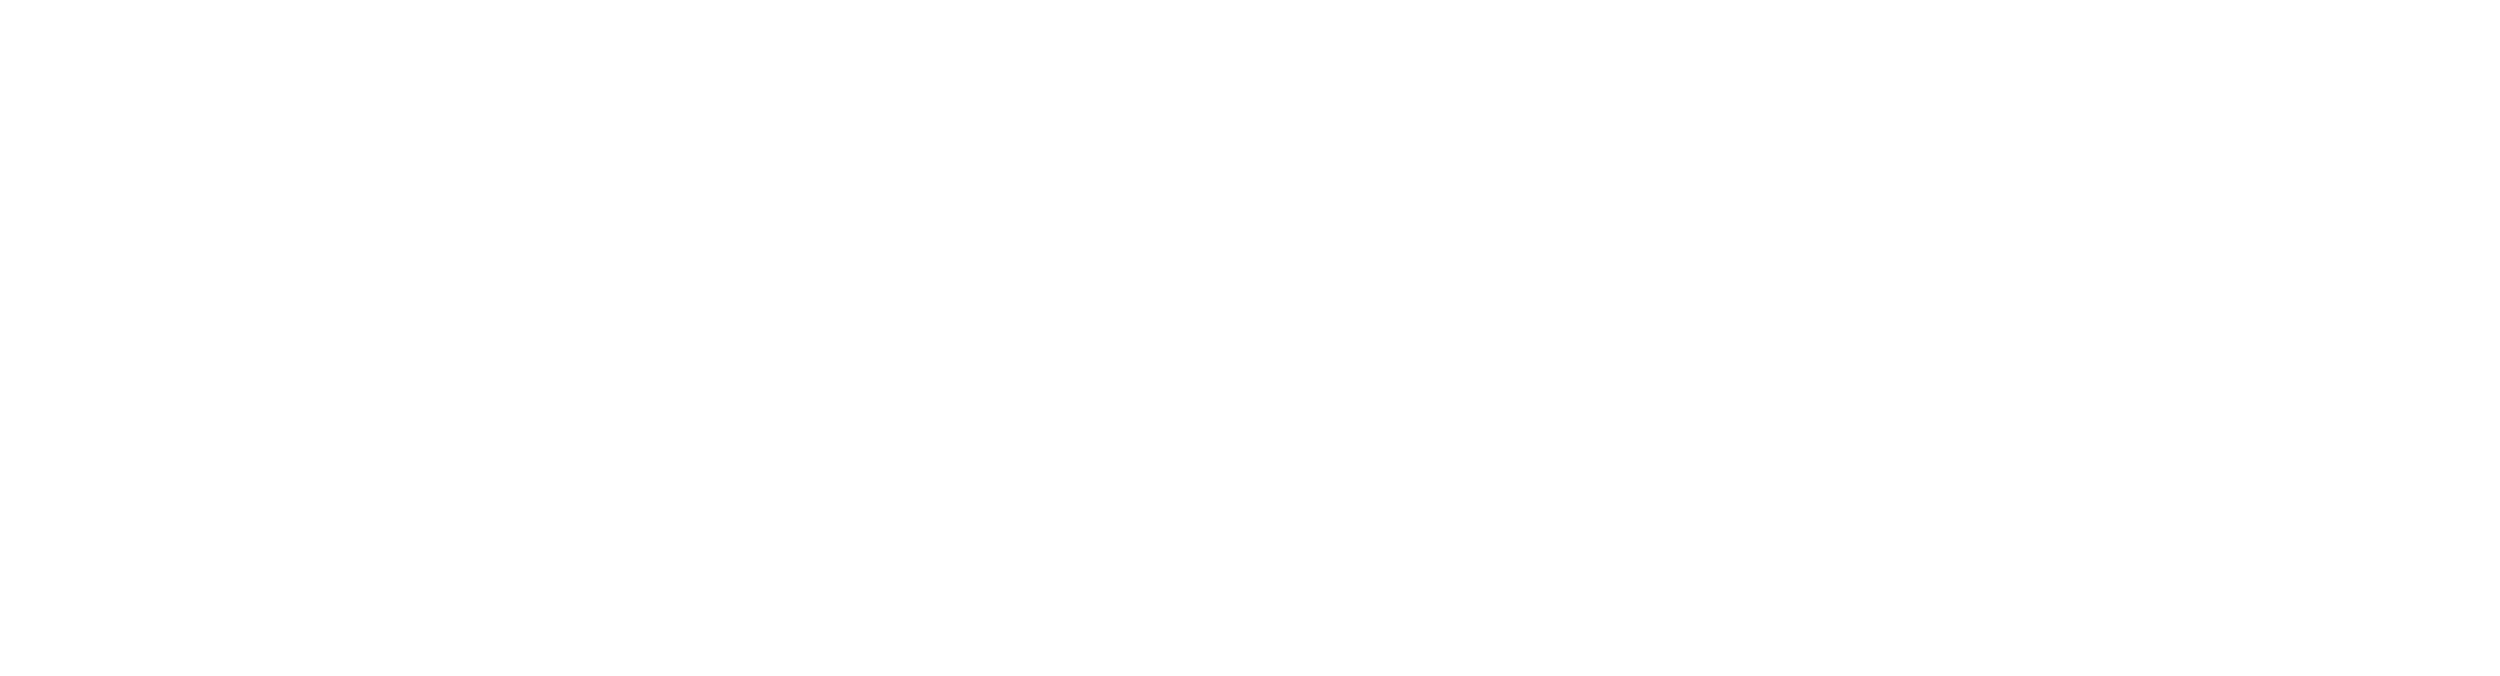 Lenihan Academy of Irish Dance logo